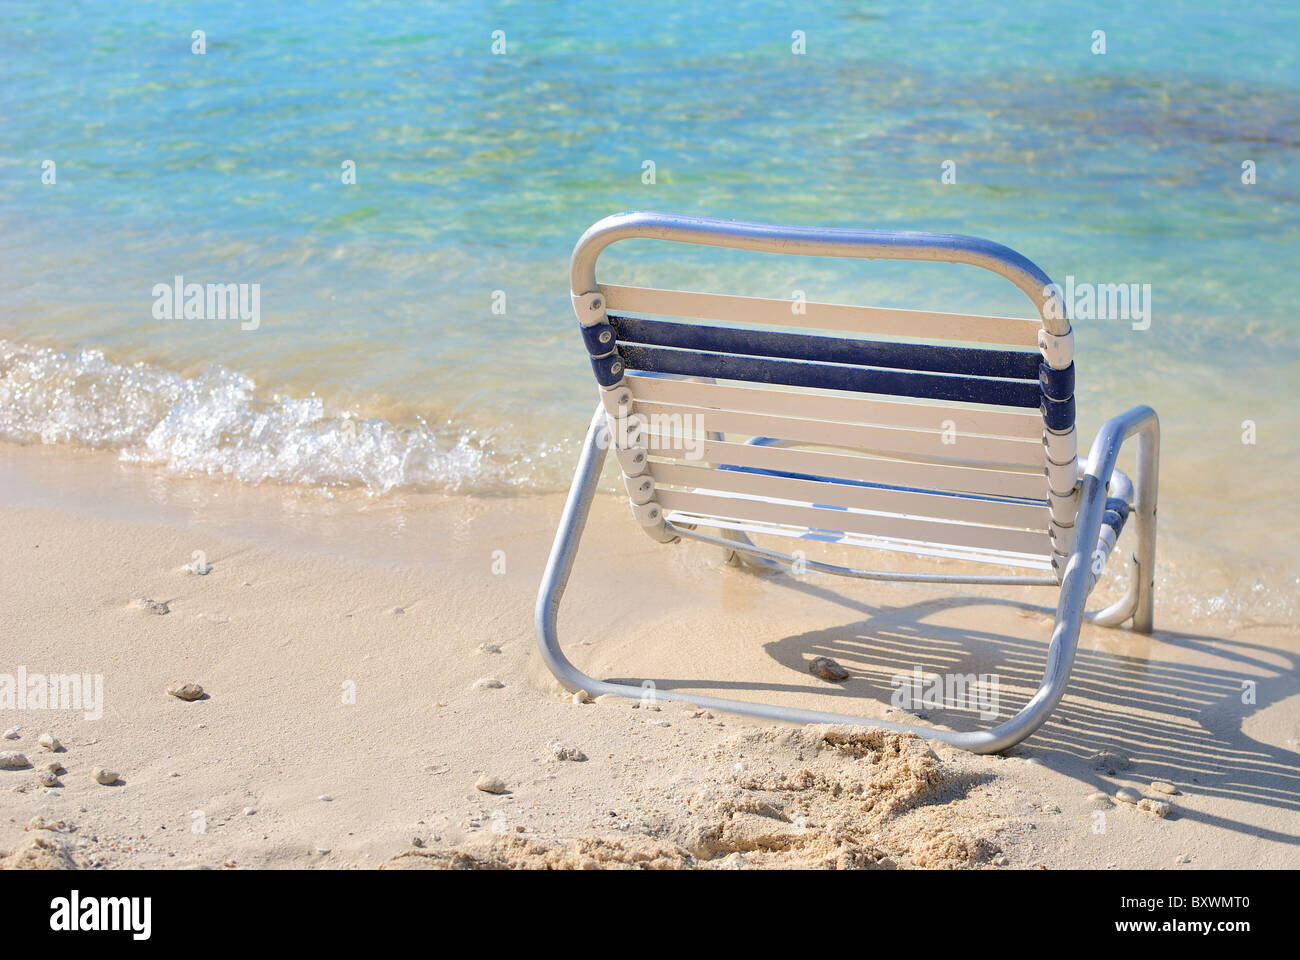 Relaxing beach chair near the ocean waves - Stock Image